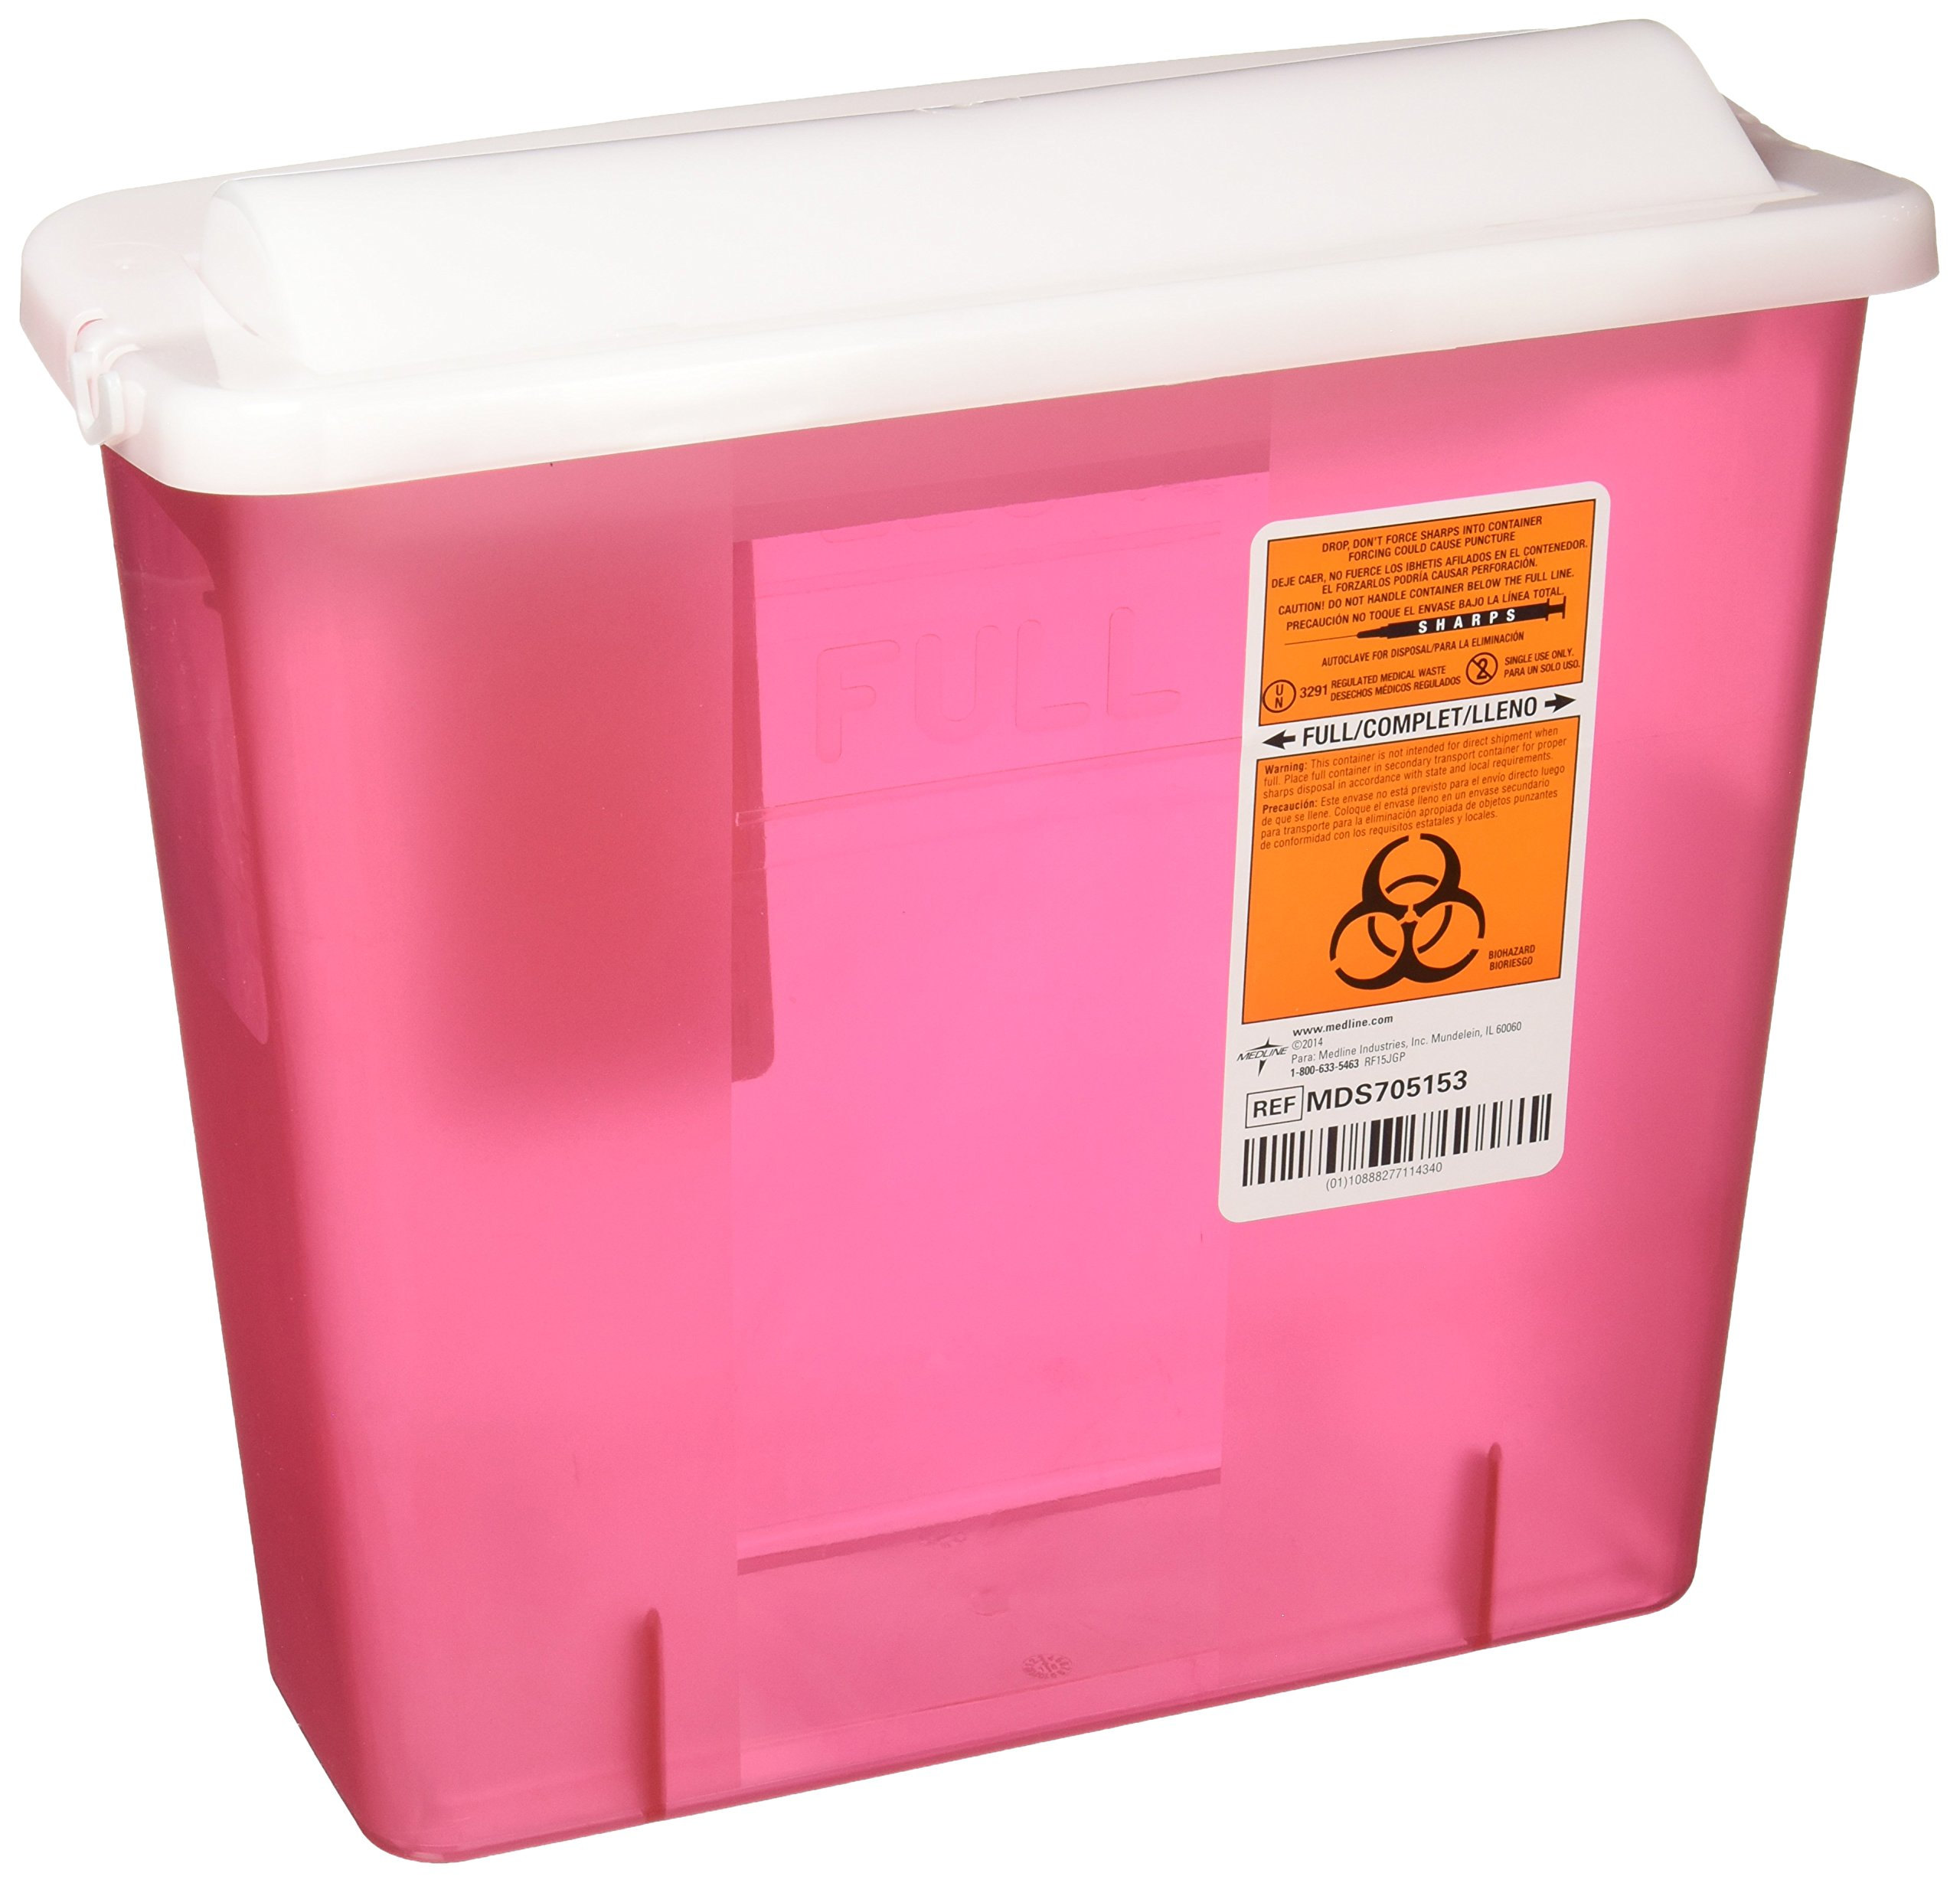 Medline MDS705153 Sharps Container, 5 Quart, Counter-Balance Lid, Red (Pack of 20)